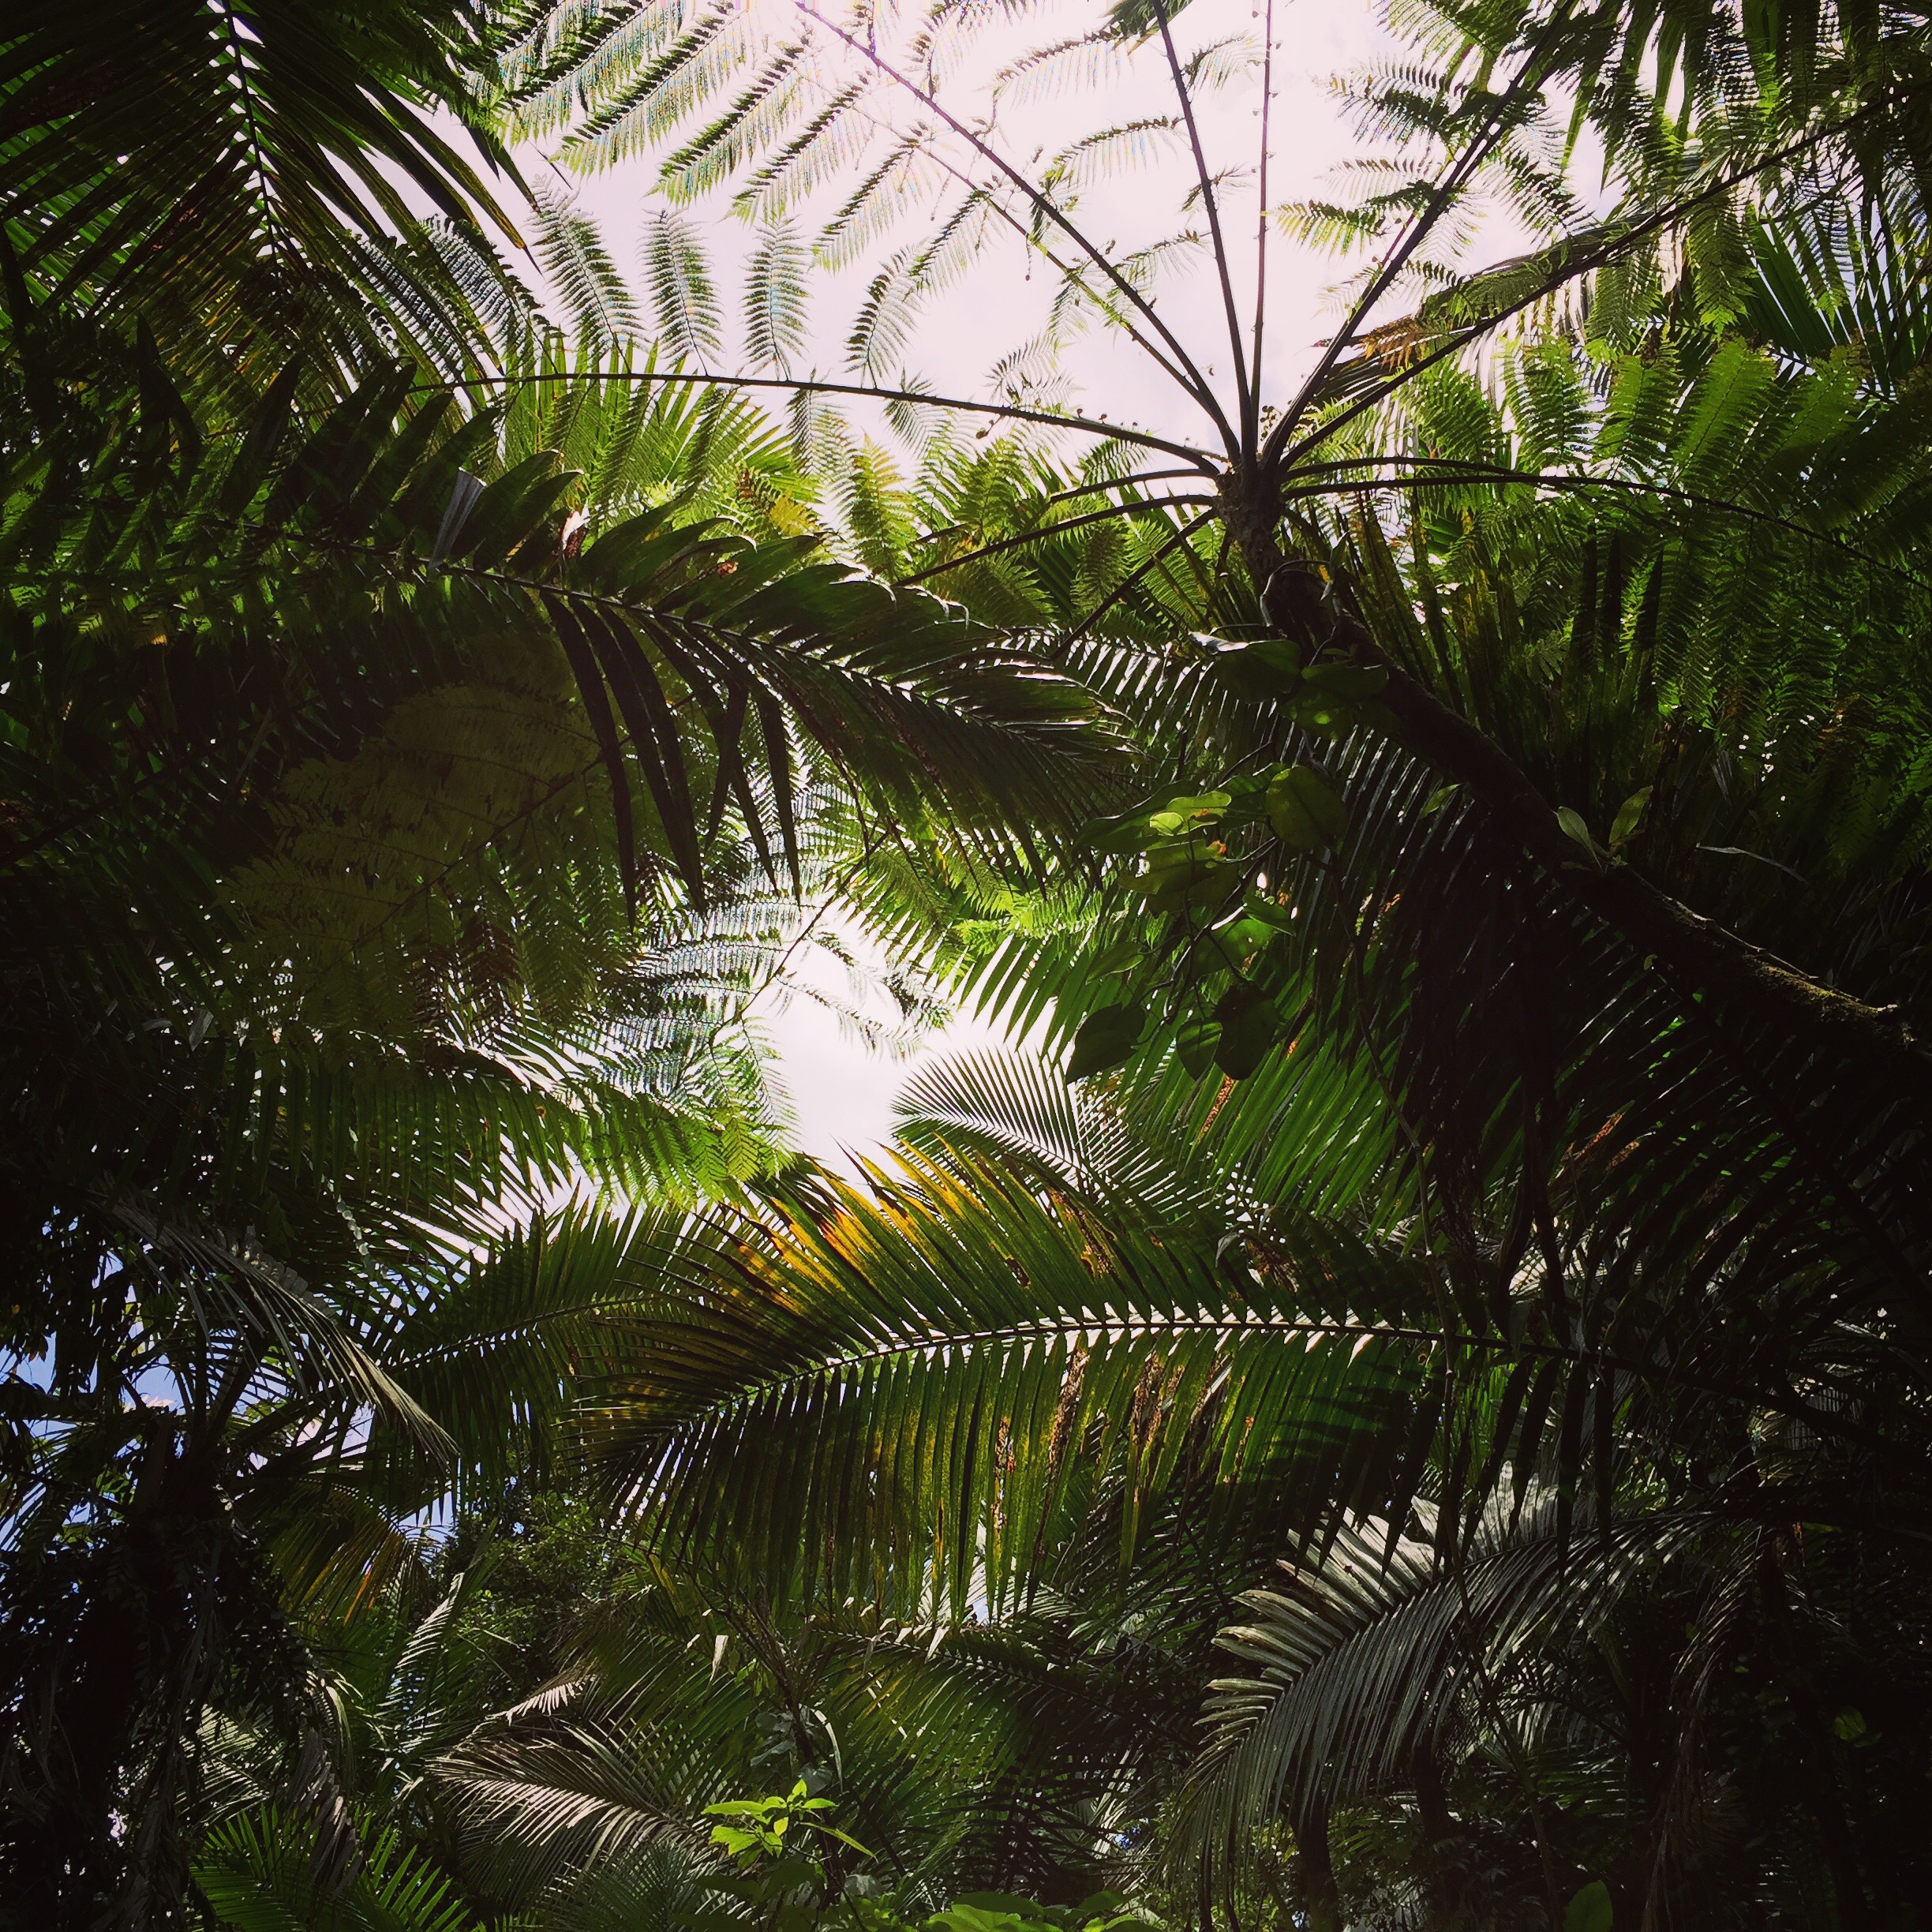 The sky through the rain forest. El Yunque. Always, my view is obscured.